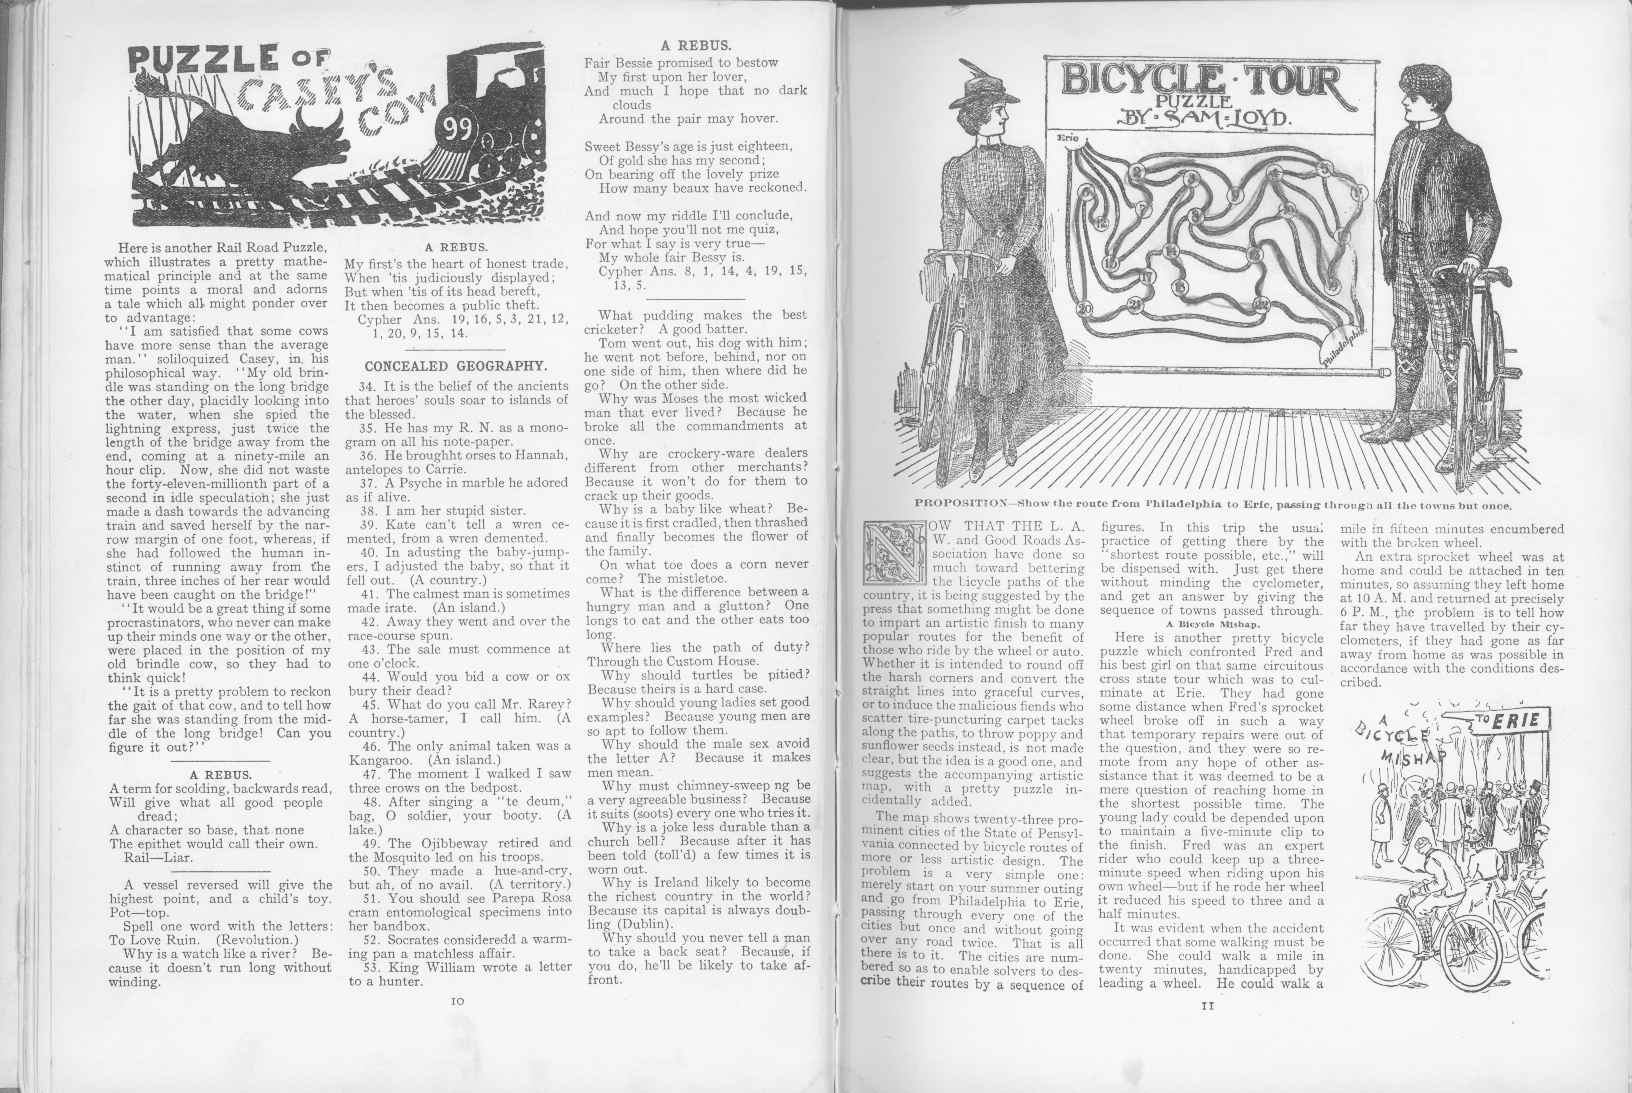 Sam Loyd - Cyclopedia of Puzzles - page 10-11